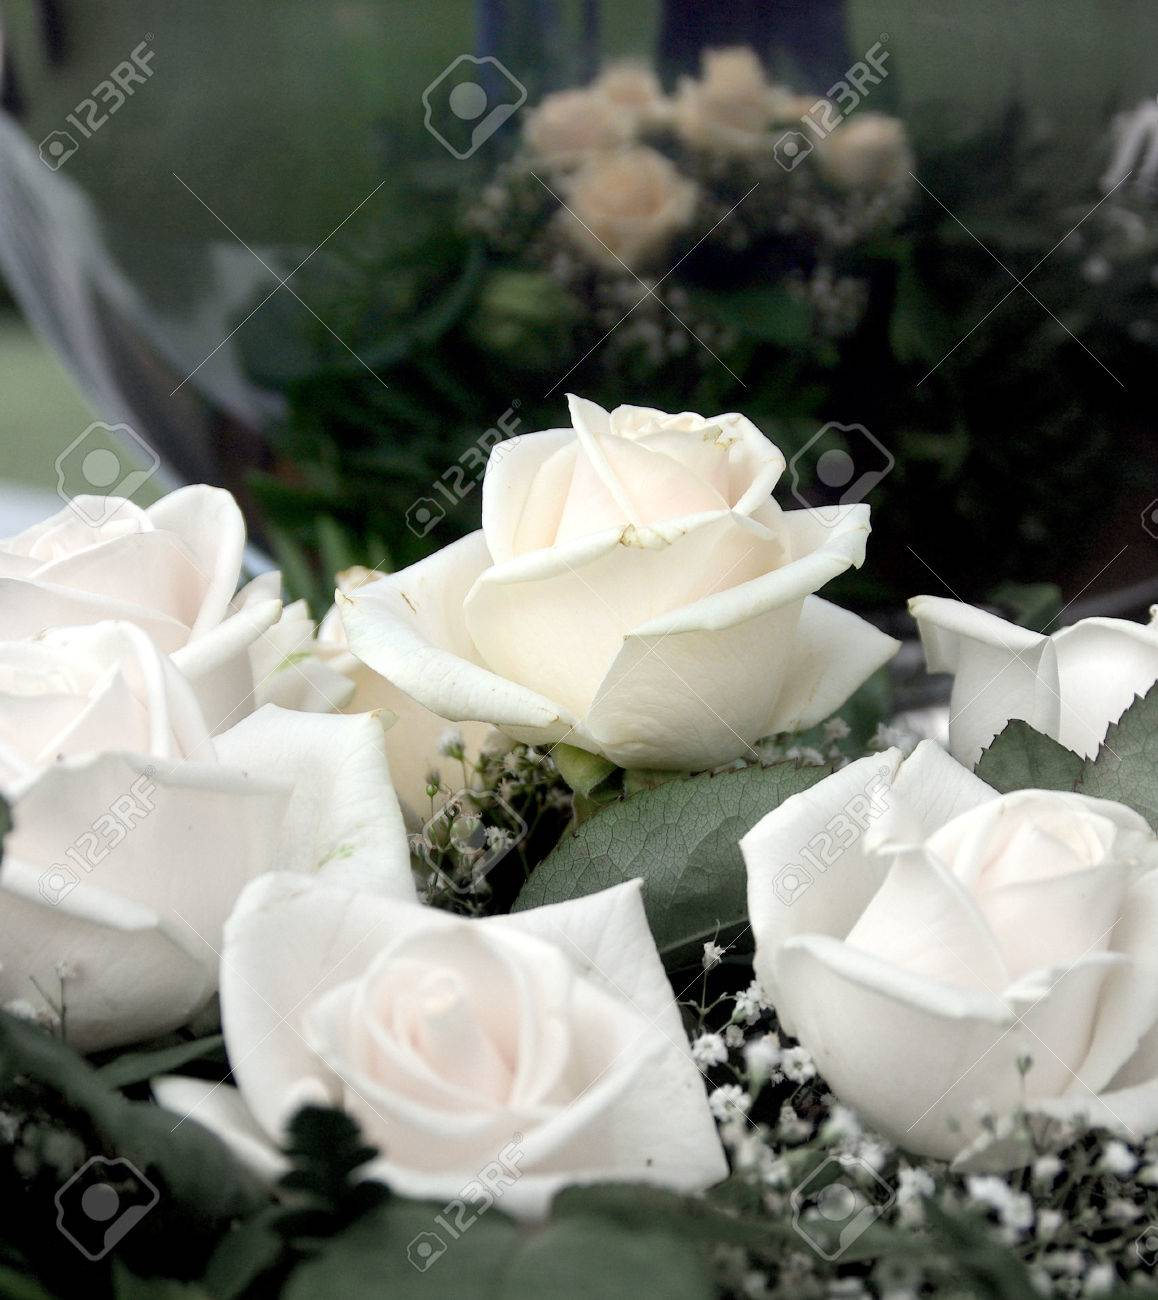 White roses symbol of the purity of love donated for the feast white roses symbol of the purity of love donated for the feast of love buycottarizona Choice Image